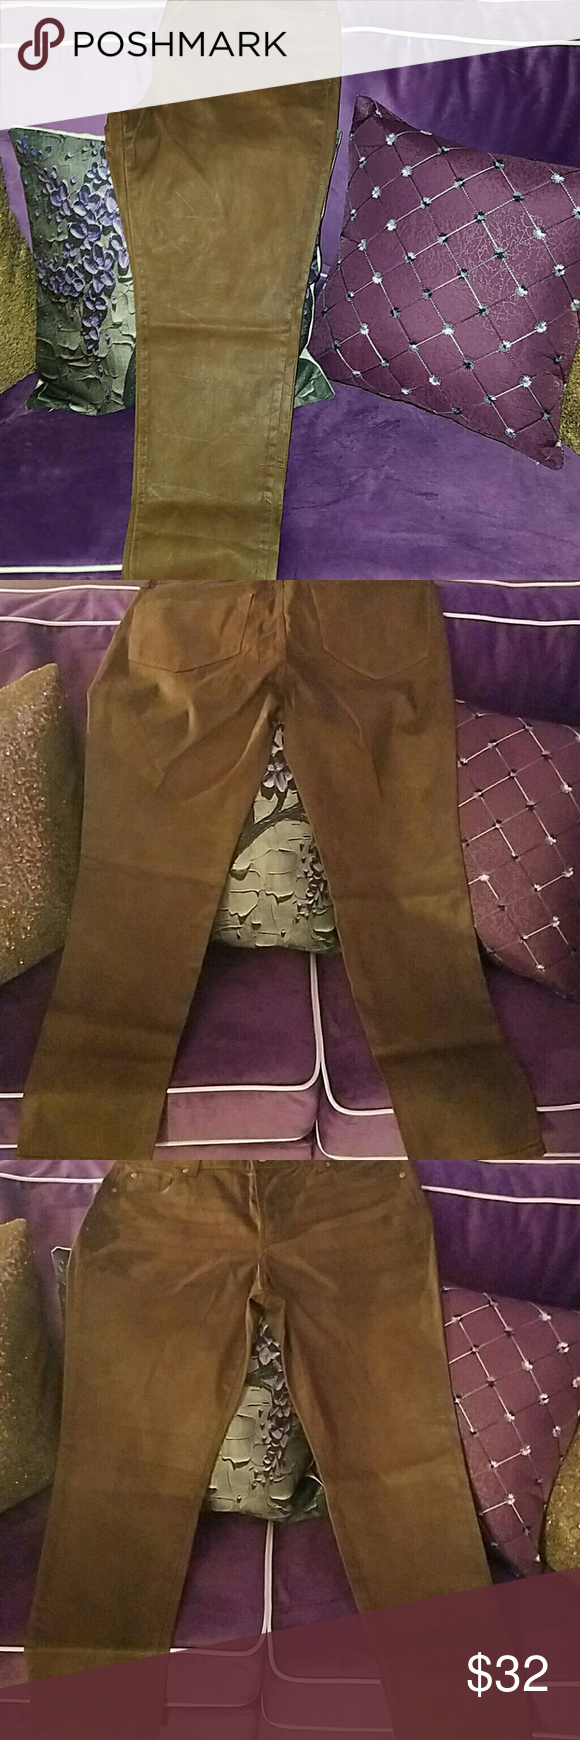 New Dark Camel Chestnut Wax Coated Skinnies! These are brand new Gorgeous deep Camel wax coated jeans size 14 never got to wear these. You'll love them. They have a nice creasing made into the jeans very nice. They feel like they may have a tad of stretch. Jeans Skinny